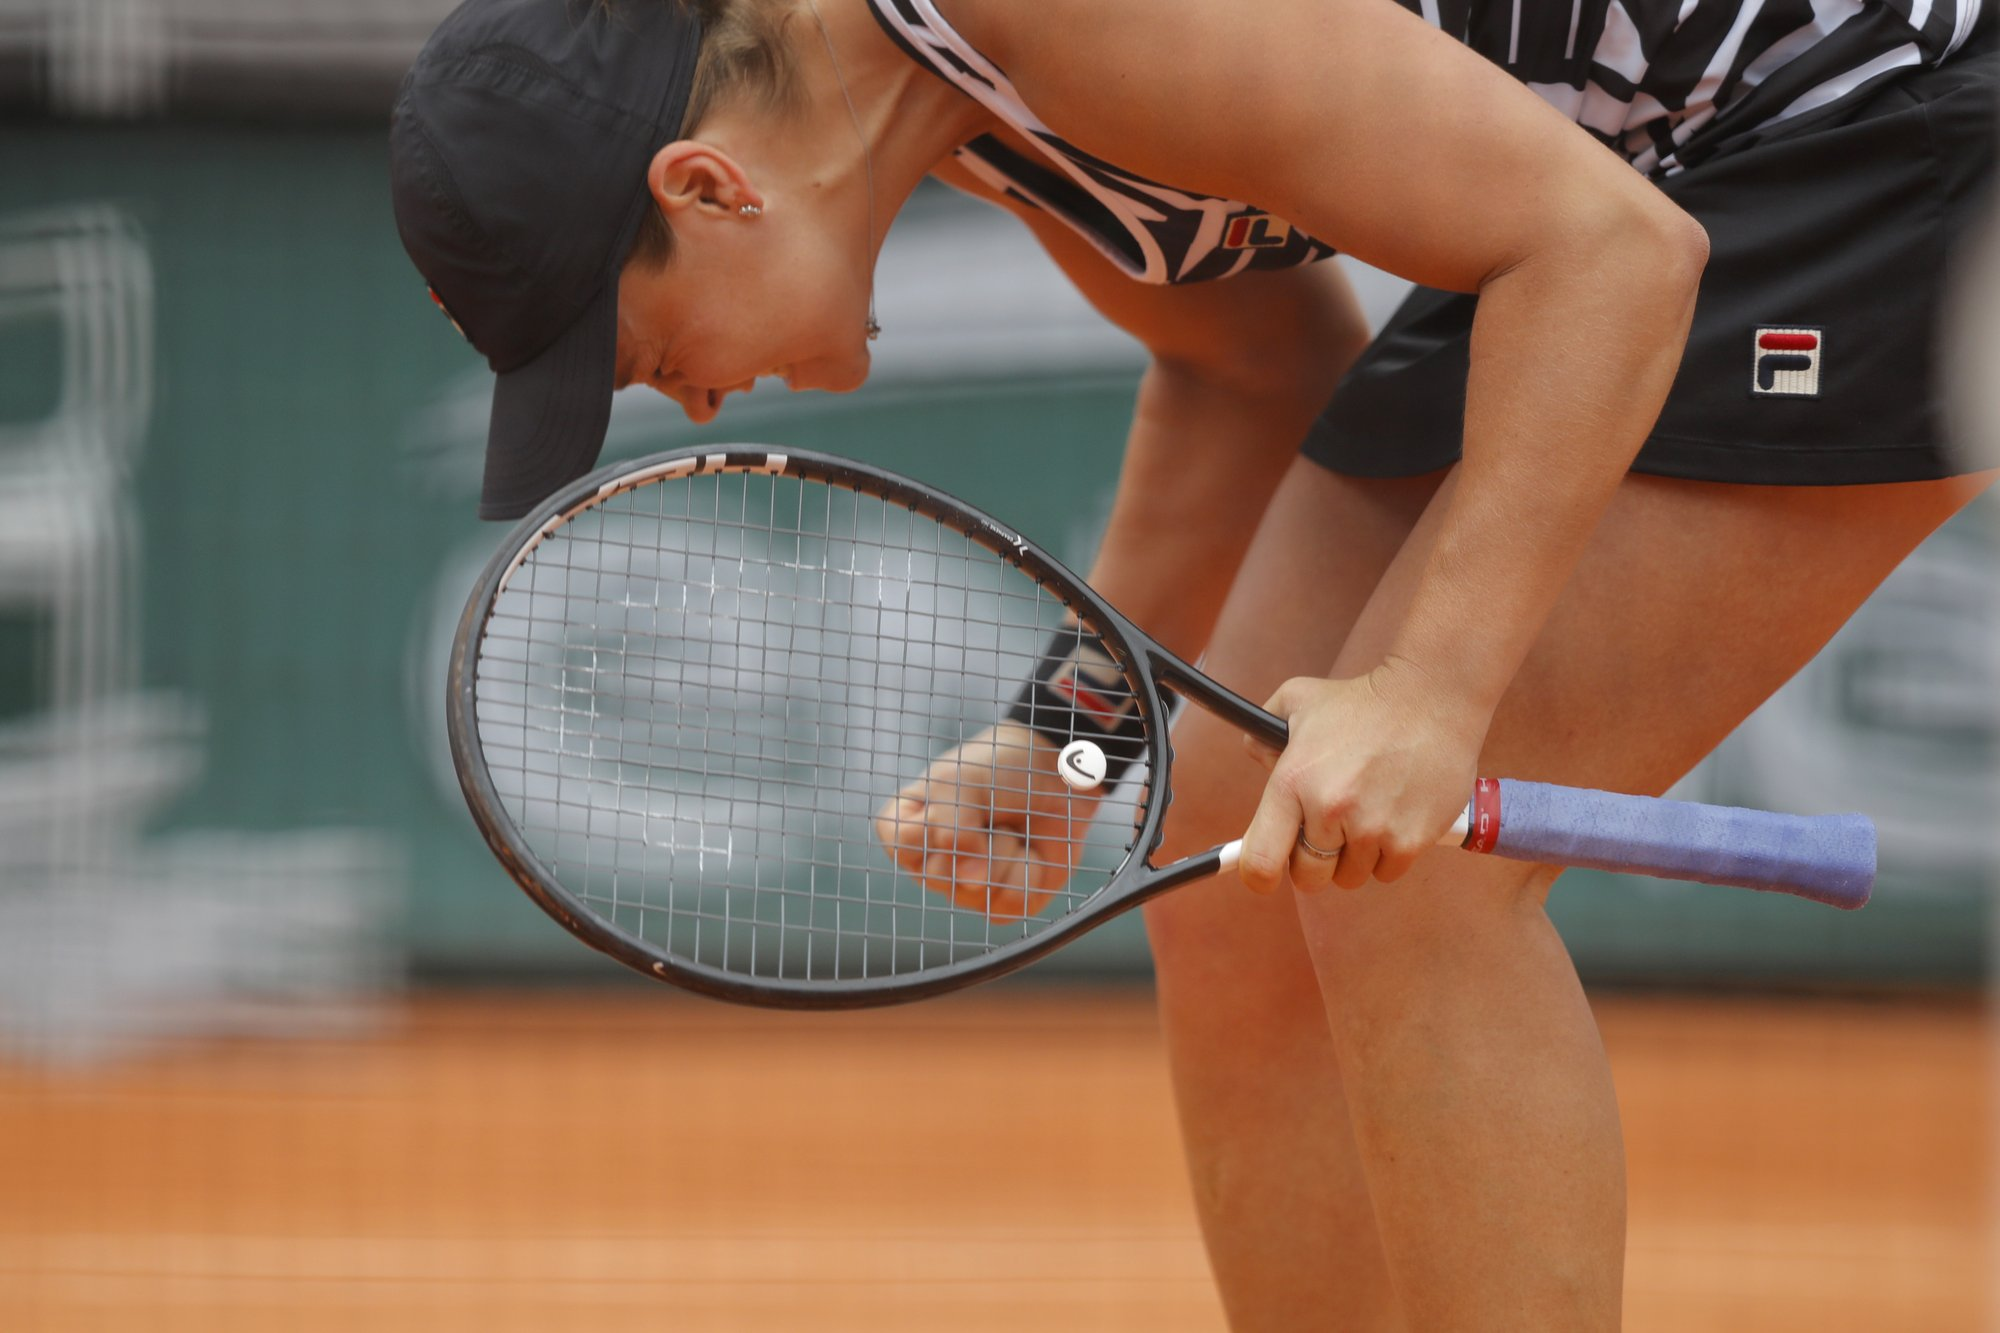 Something new: A French Open final for Barty, Vondrousova